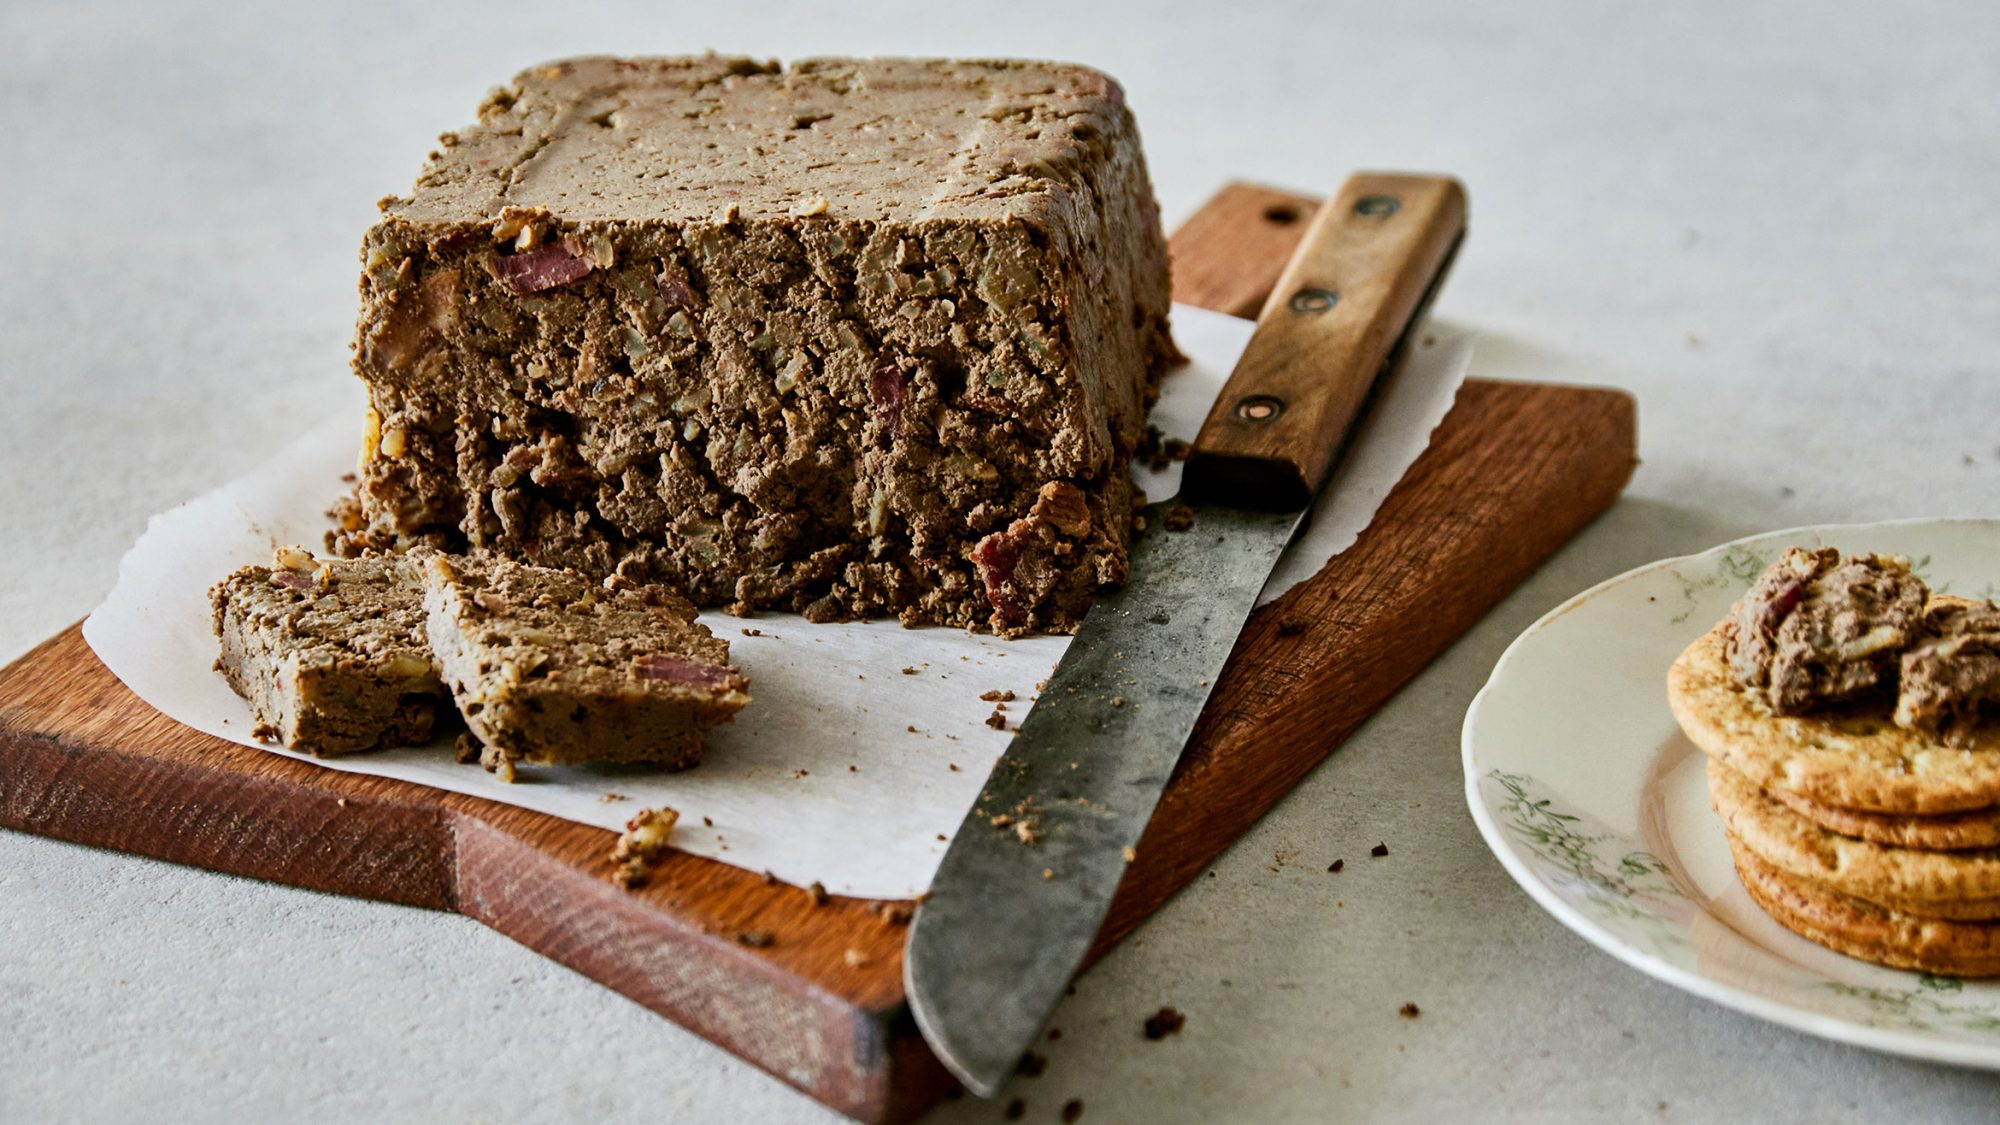 Article-Liver-Pudding-Recipe-Amethyst-Ganaway